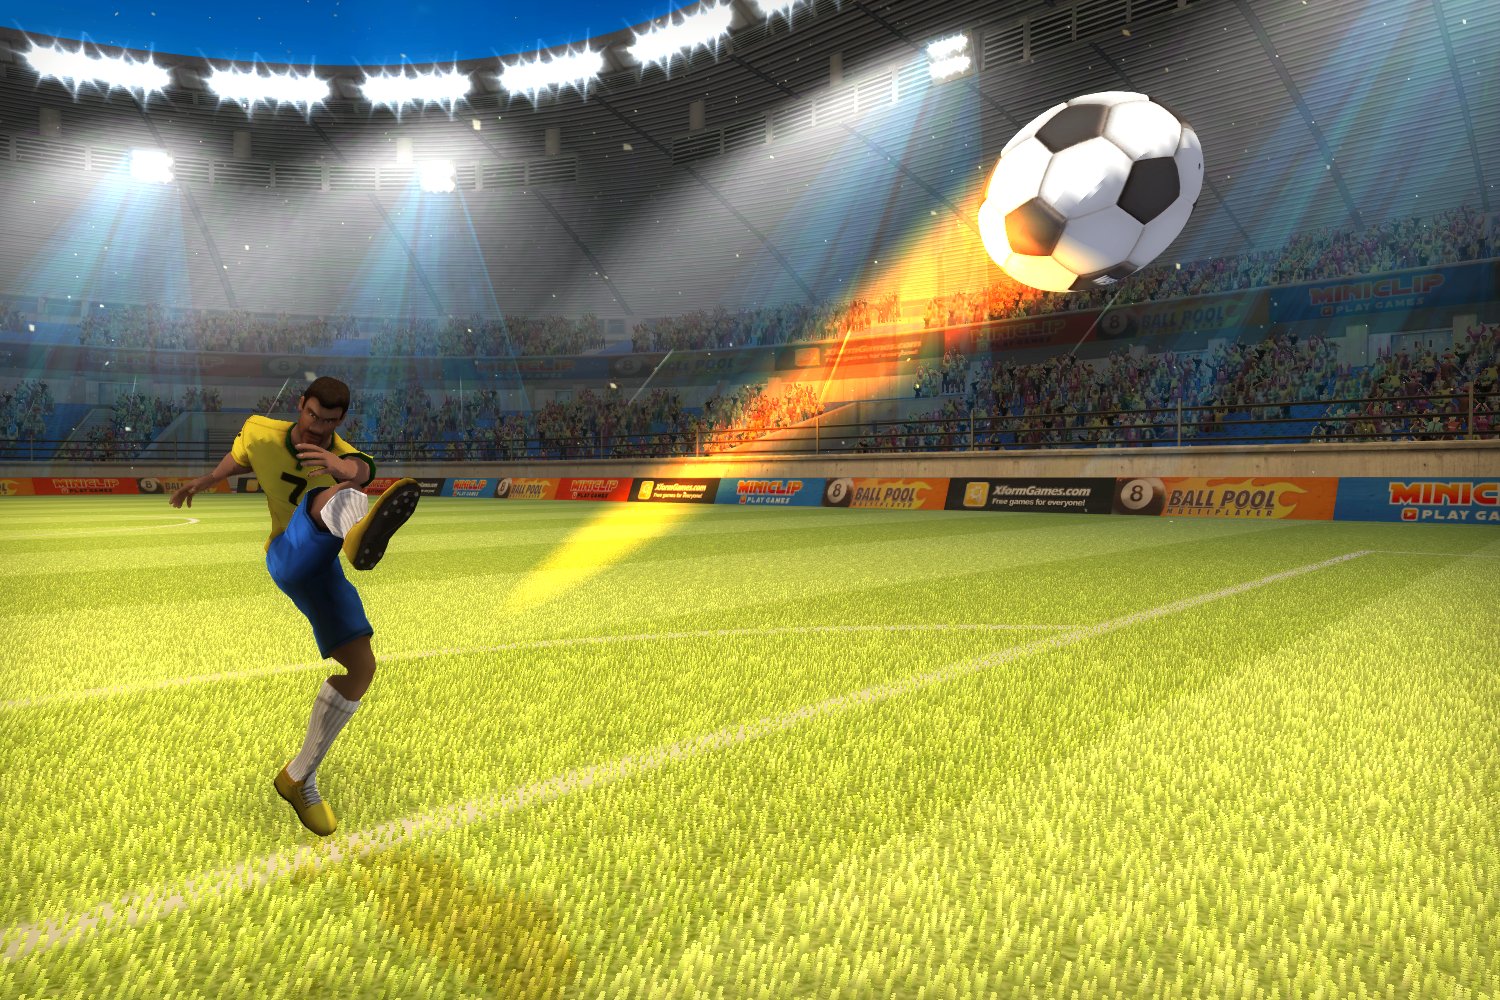 Enjoy Watching Soccer From Different Aspect